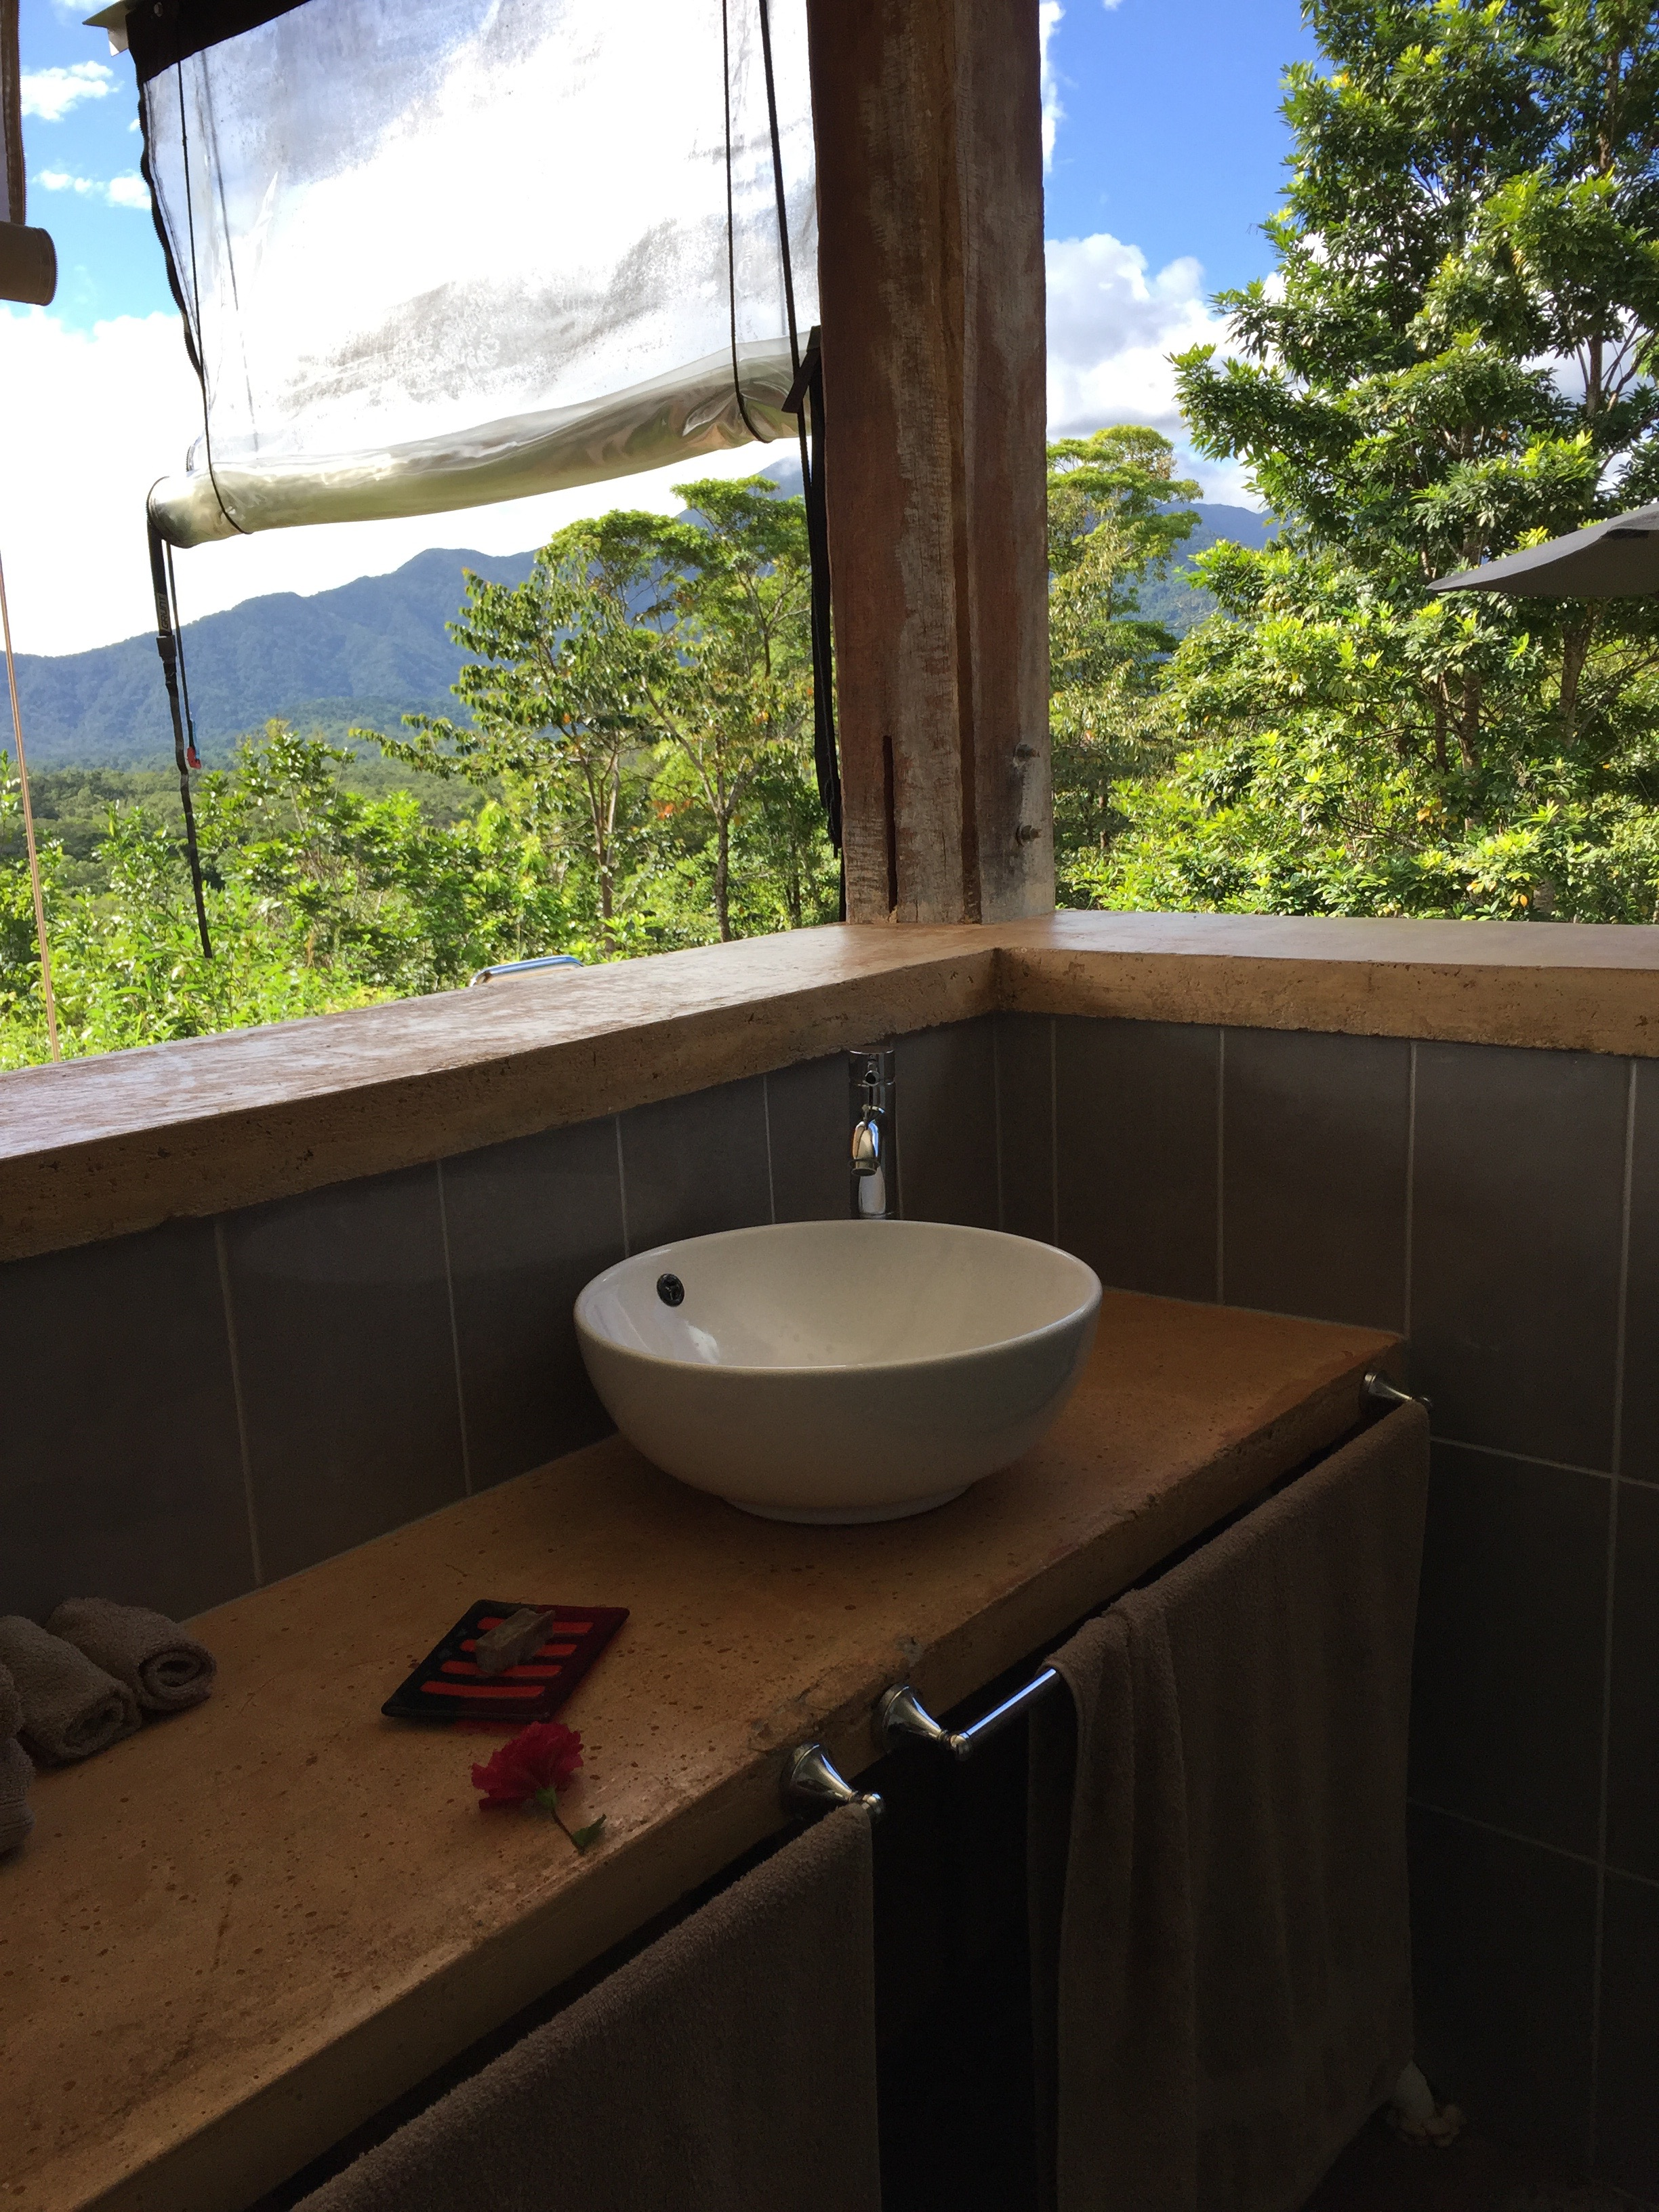 Bathroom corner counter and sink with glassless windows giving a view of the Daintree Rainforest in an Airbnb rental